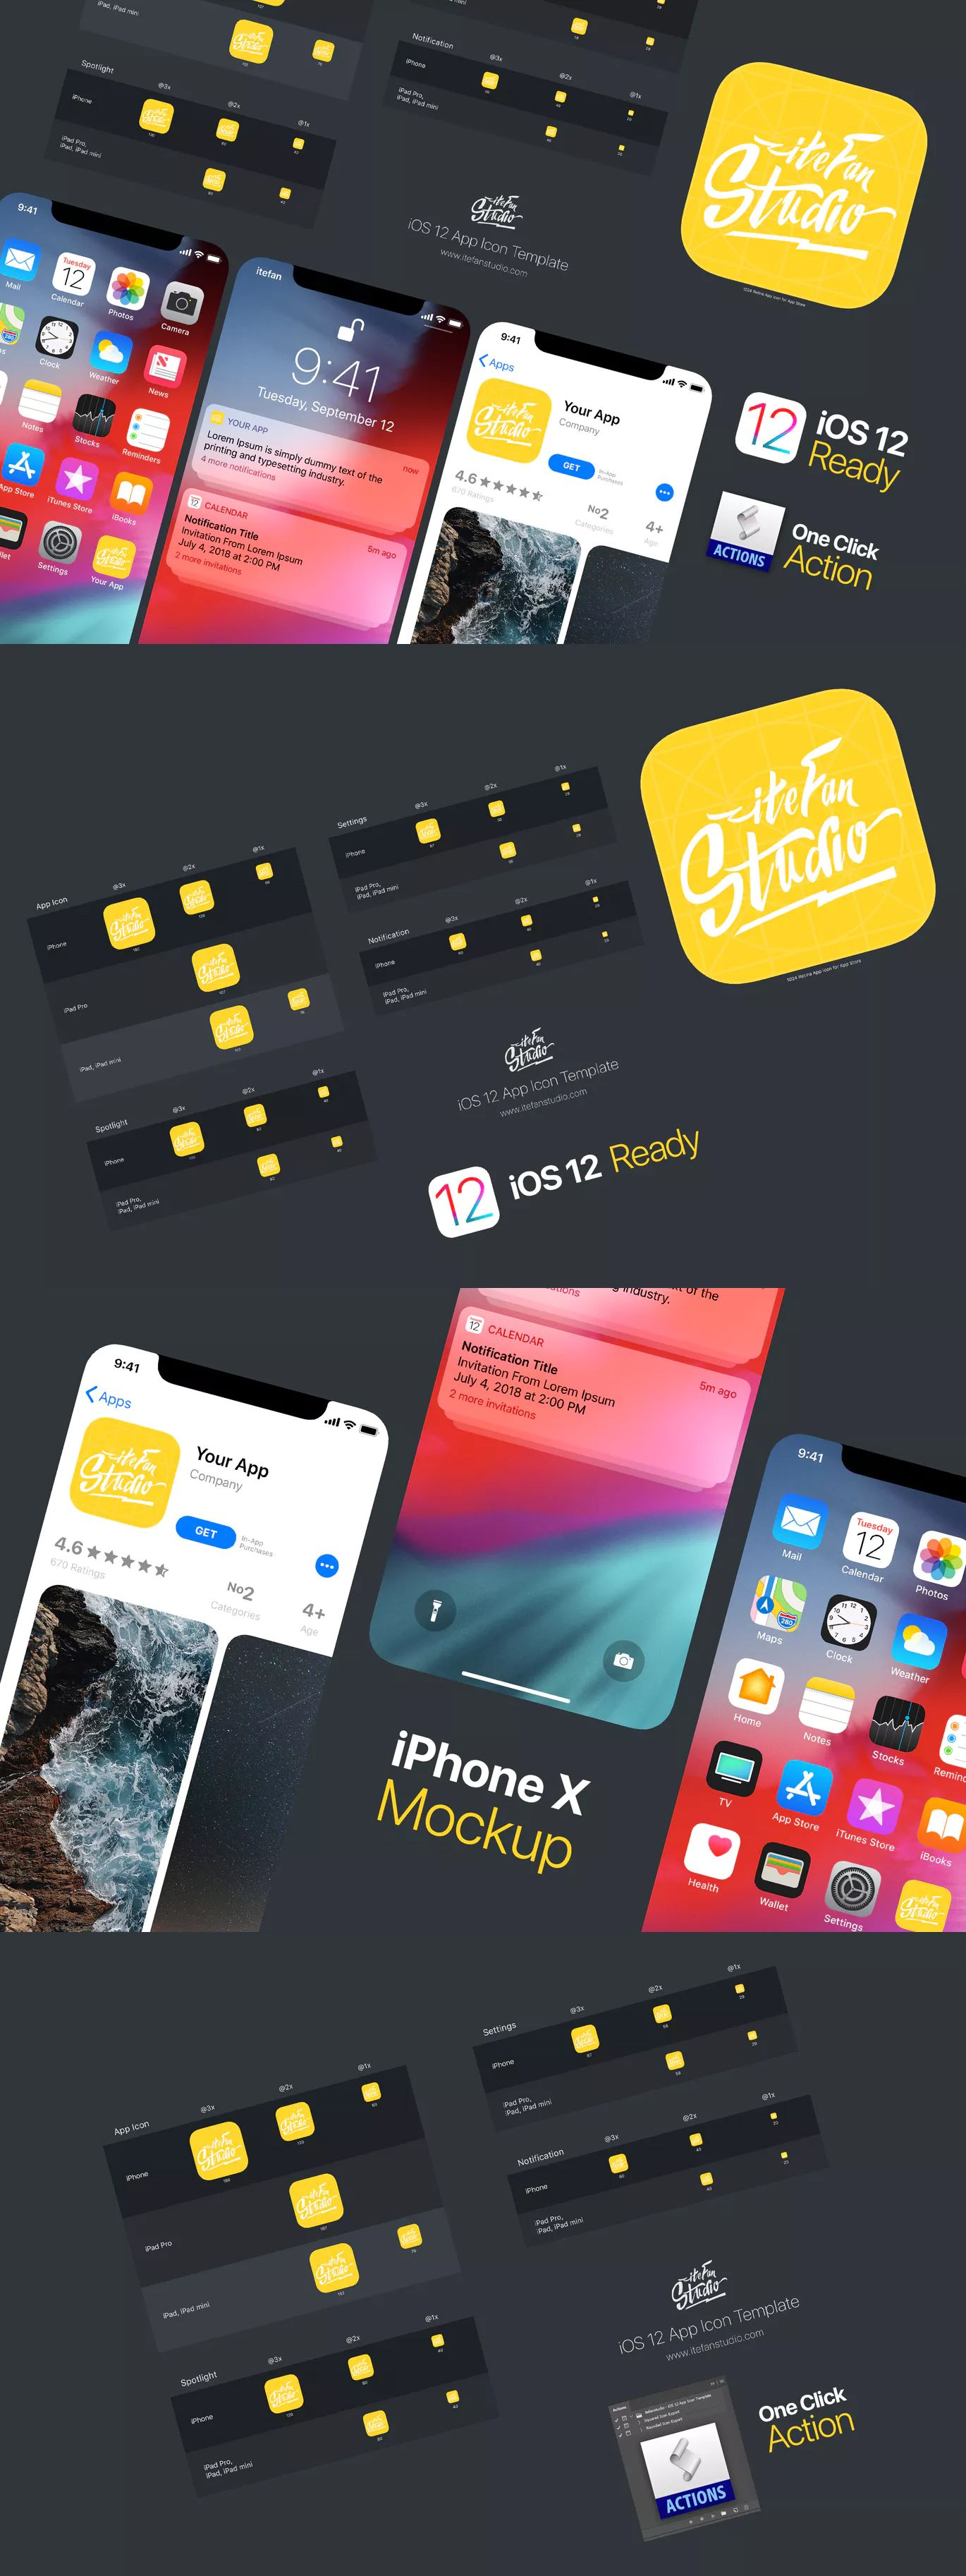 App Store Icon Template Psd {Canarias Deportiva}